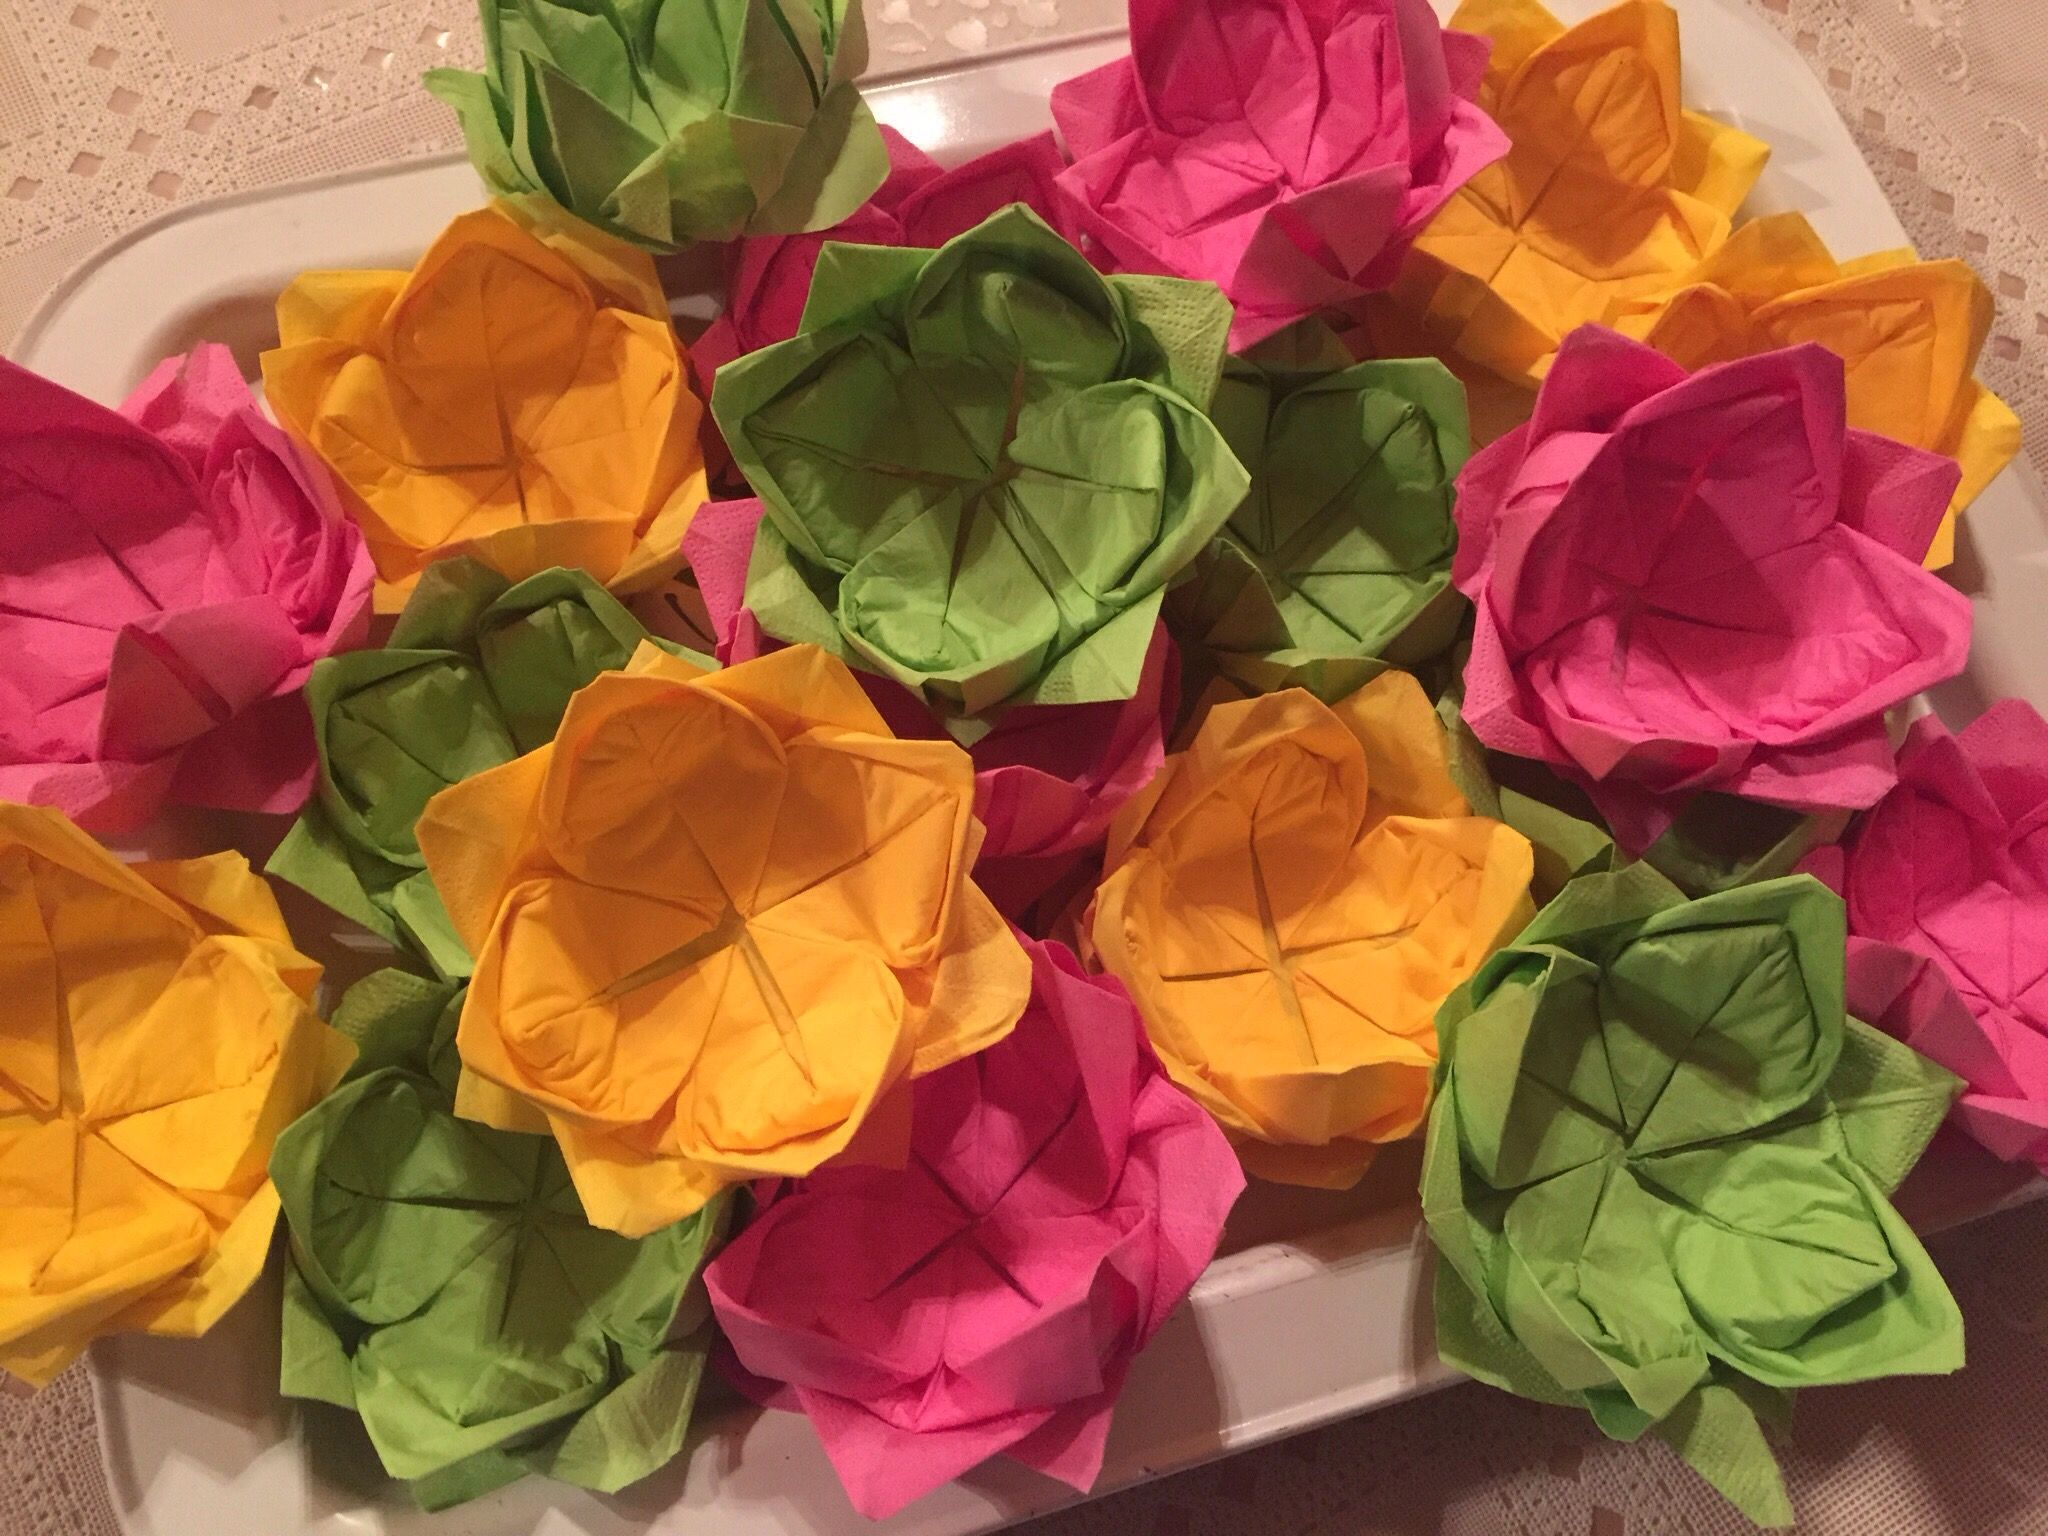 How to fold paper napkins into a lotus blossom flower lc these how to fold paper napkins into a lotus blossom flower lc these make tiny little bowls for nuts or small candies maybe paperclips or little pieces of mightylinksfo